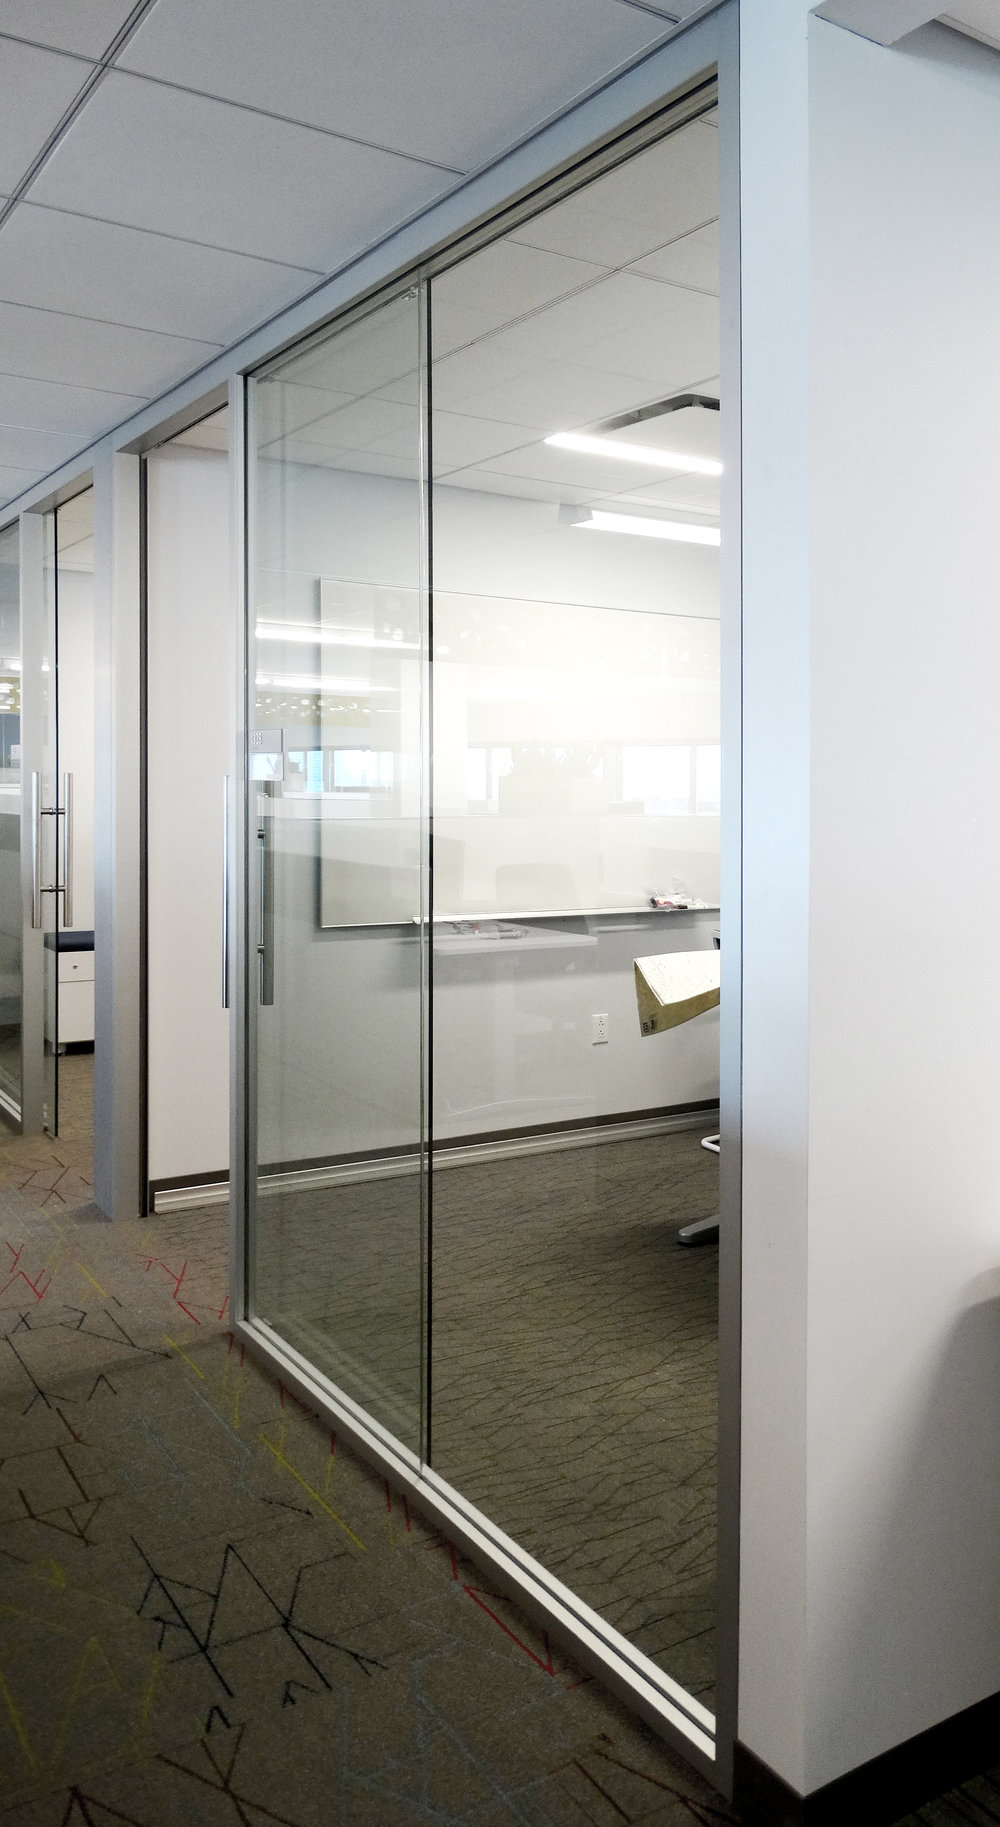 Litespace Aluminum Framed Butt Glazed Office Glass Sidelite - Spaceworks AI.jpg